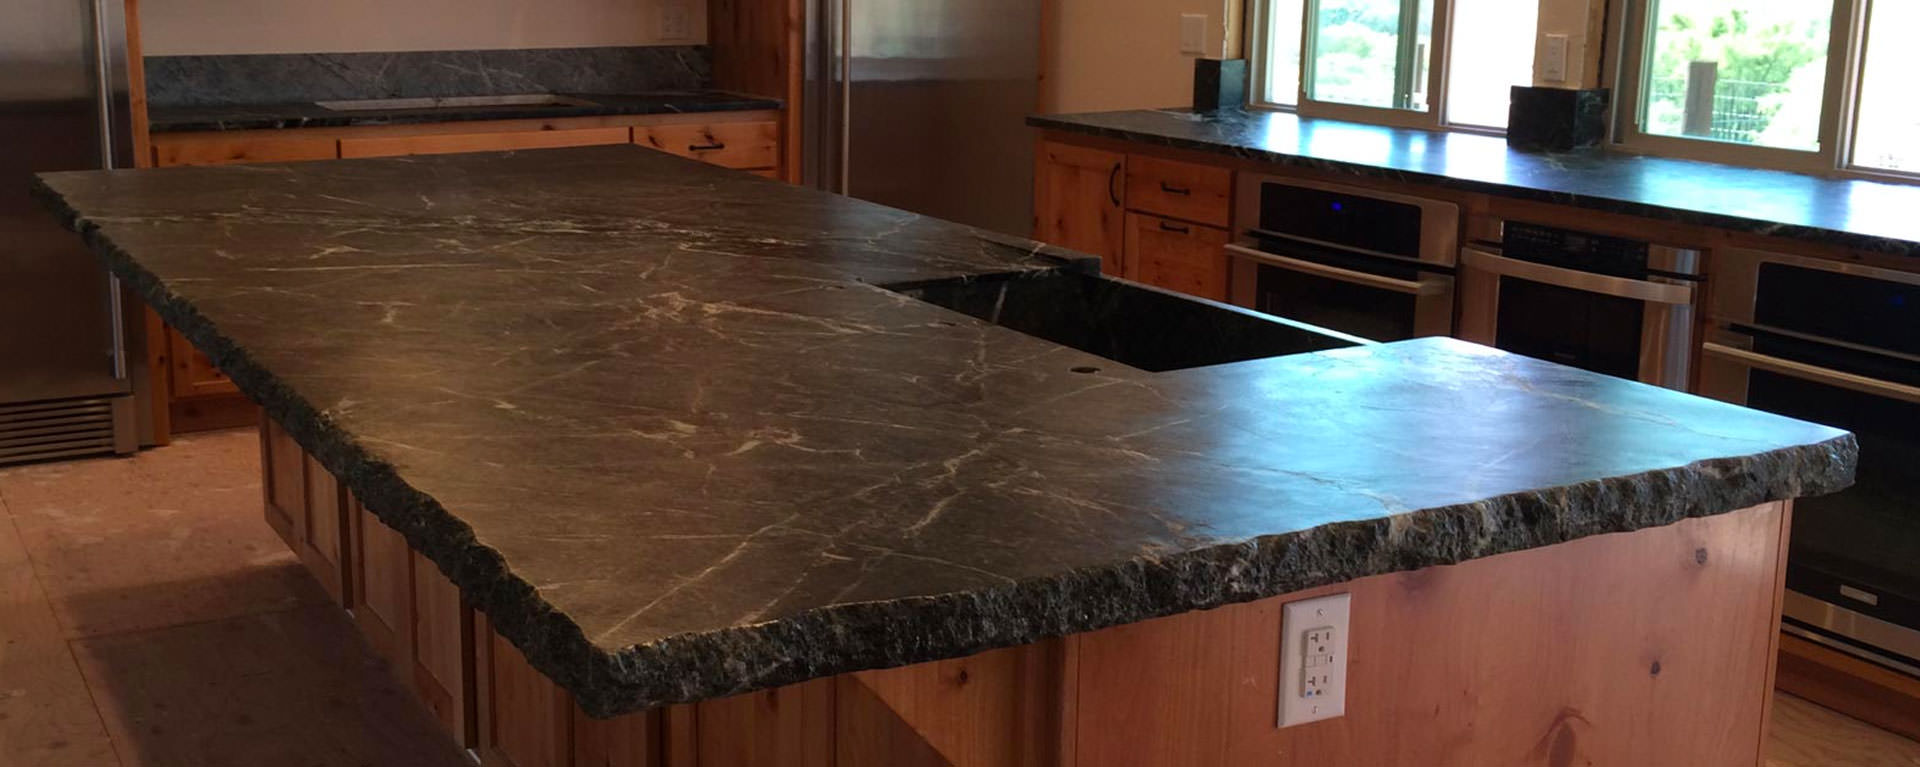 The Pros and Cons of Soapstone Counters